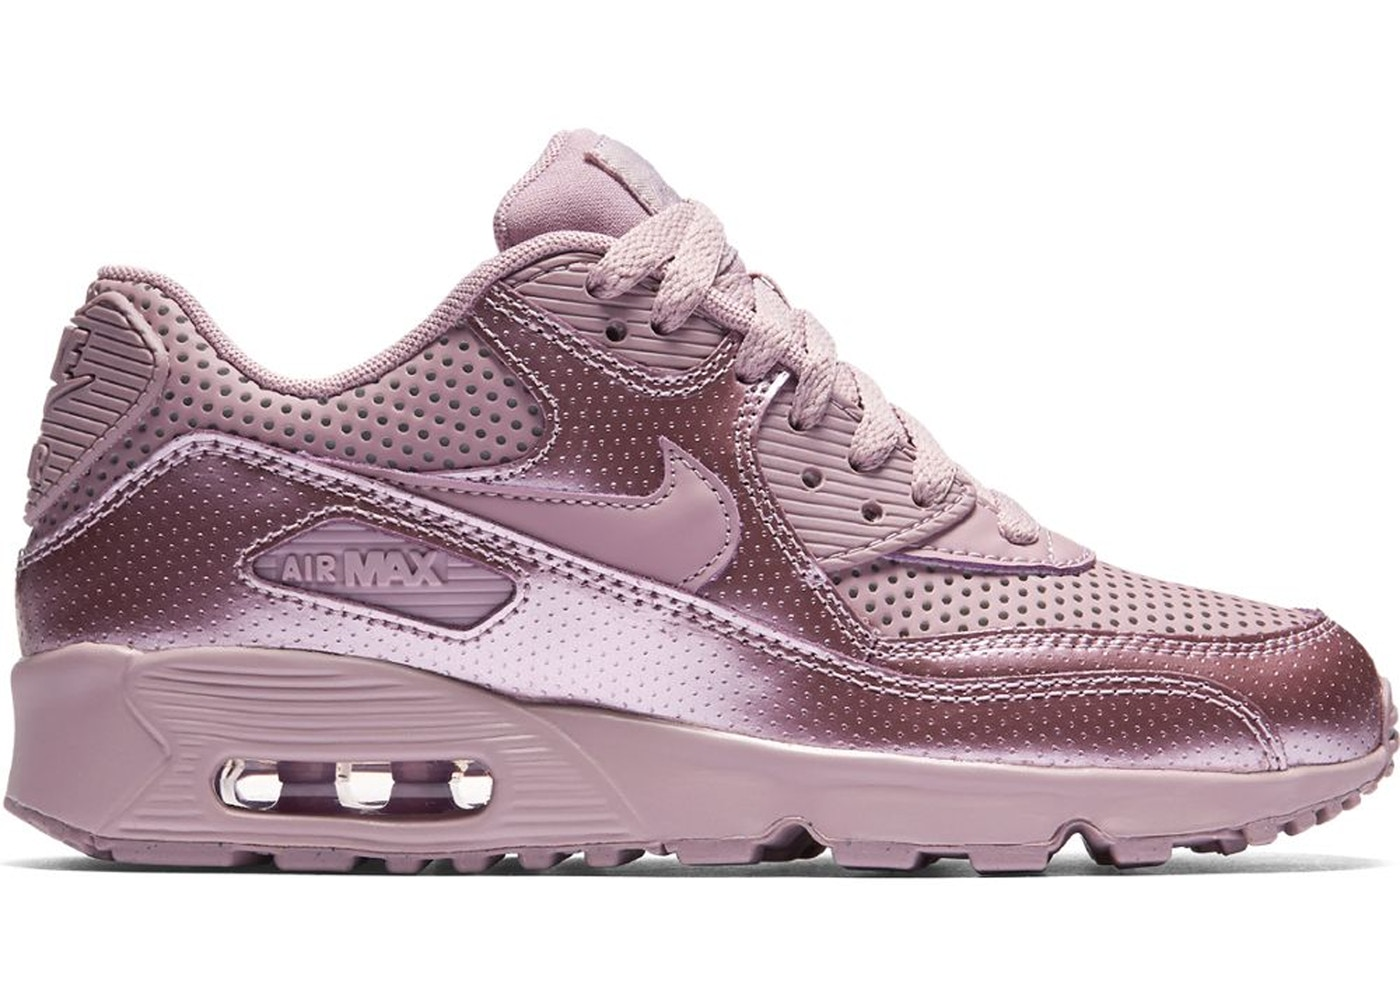 029407dc6c Sell. or Ask. Size: 6Y. View All Bids. Air Max 90 Elemental Rose ...